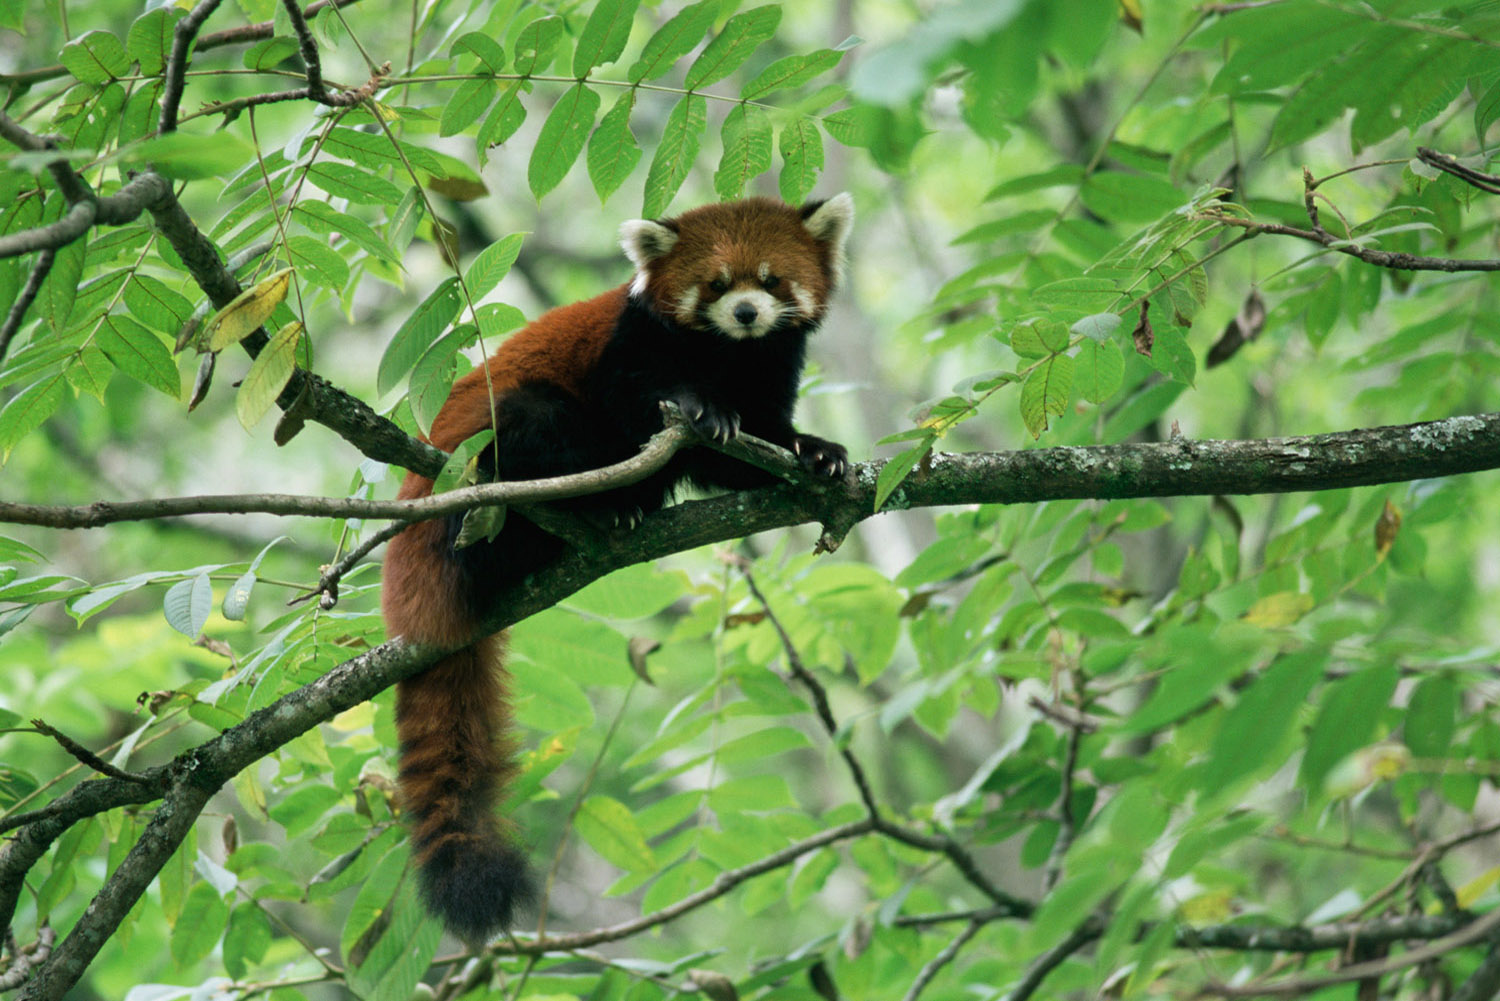 Red panda (captive) in tree, Wolong National Nature Reserve, Sichuan, China